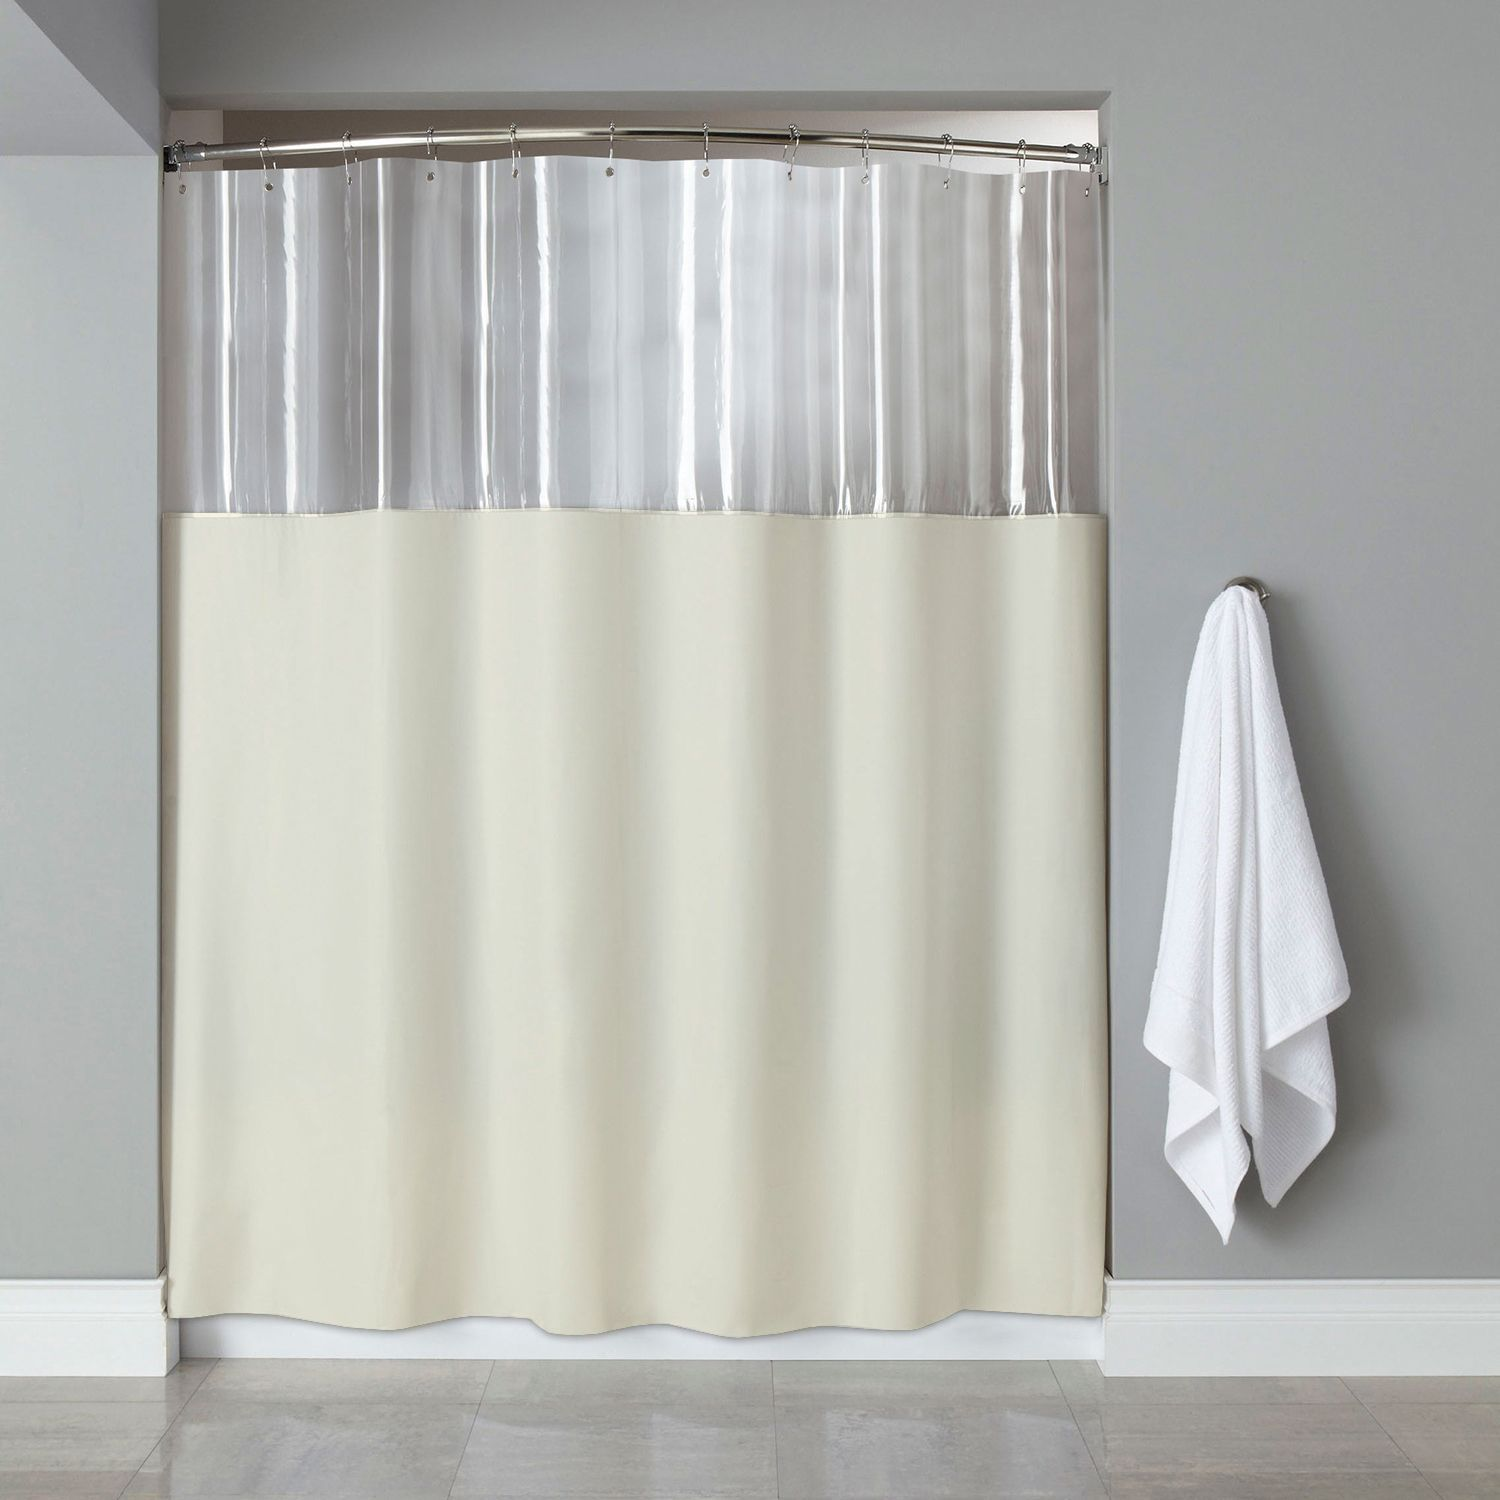 Extra Long Antibacterial Clear Ivory Shower Curtain 84 X72 White Shower Fabric Shower Curtains Extra Long Shower Curtain